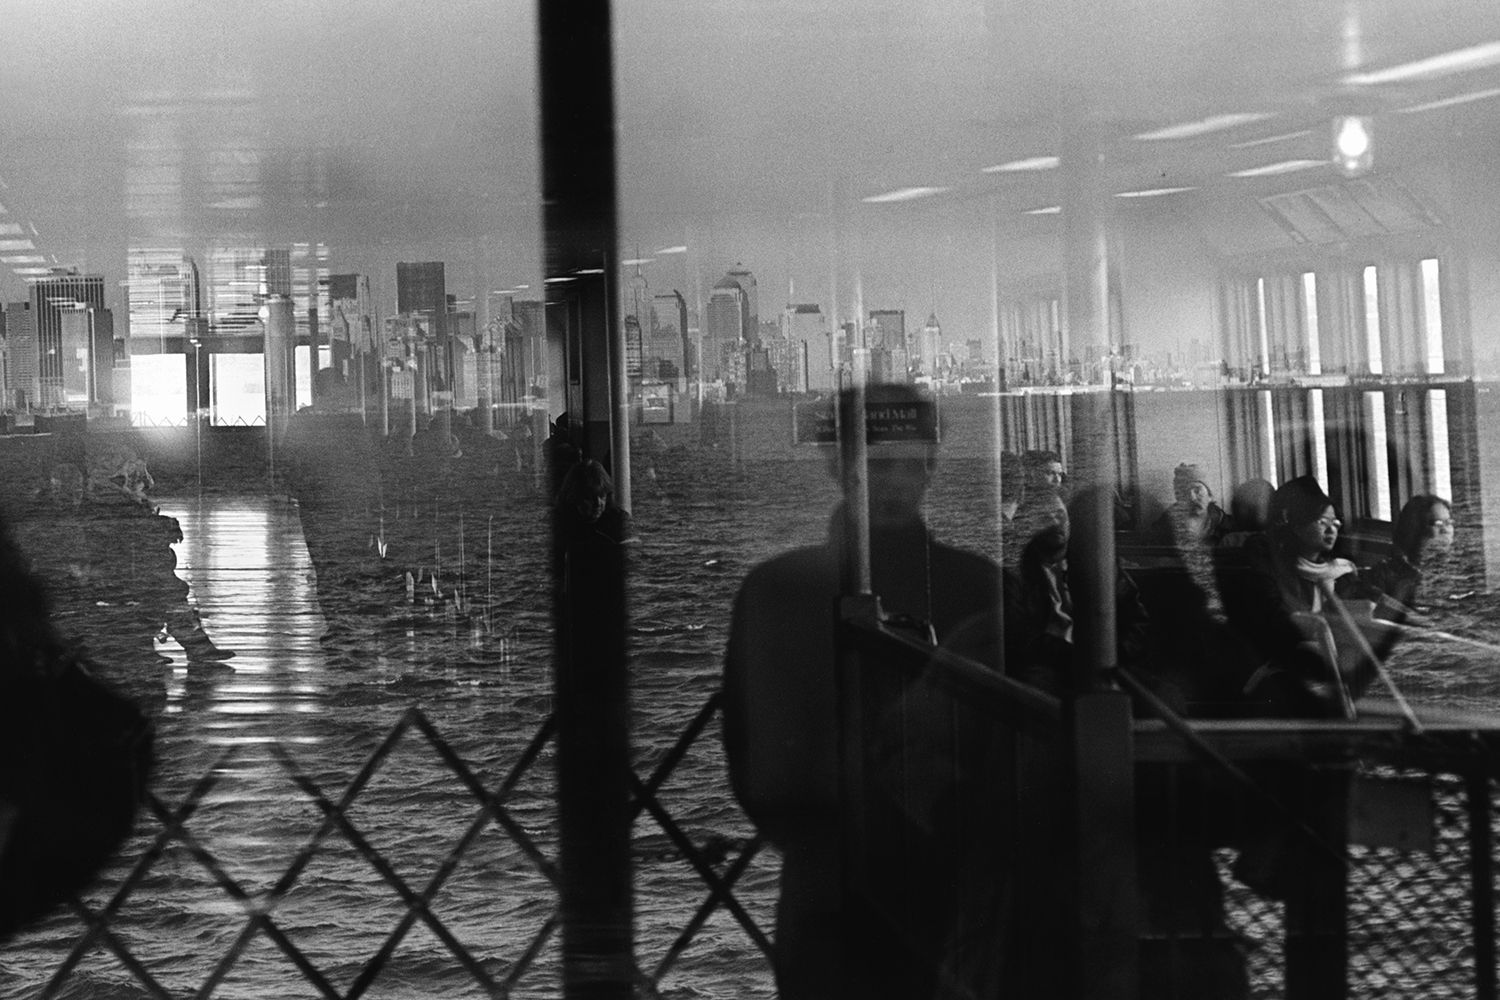 Reflection in awindow of the Staten Island ferry  New York, NY. 2002